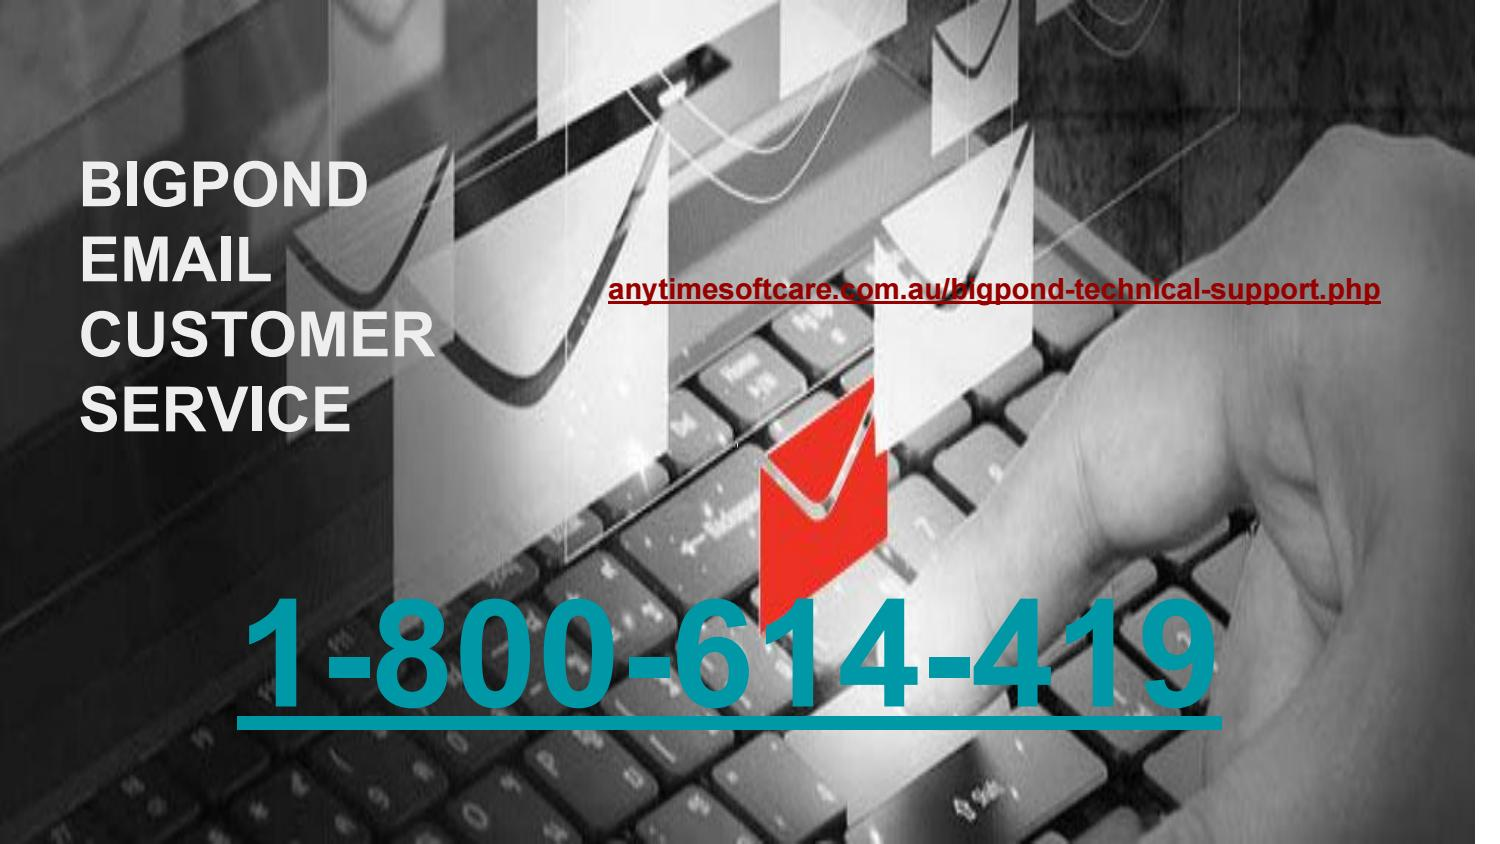 Worthwhile Email Solutions At 1-800-614-419  Bigpond Customer Service